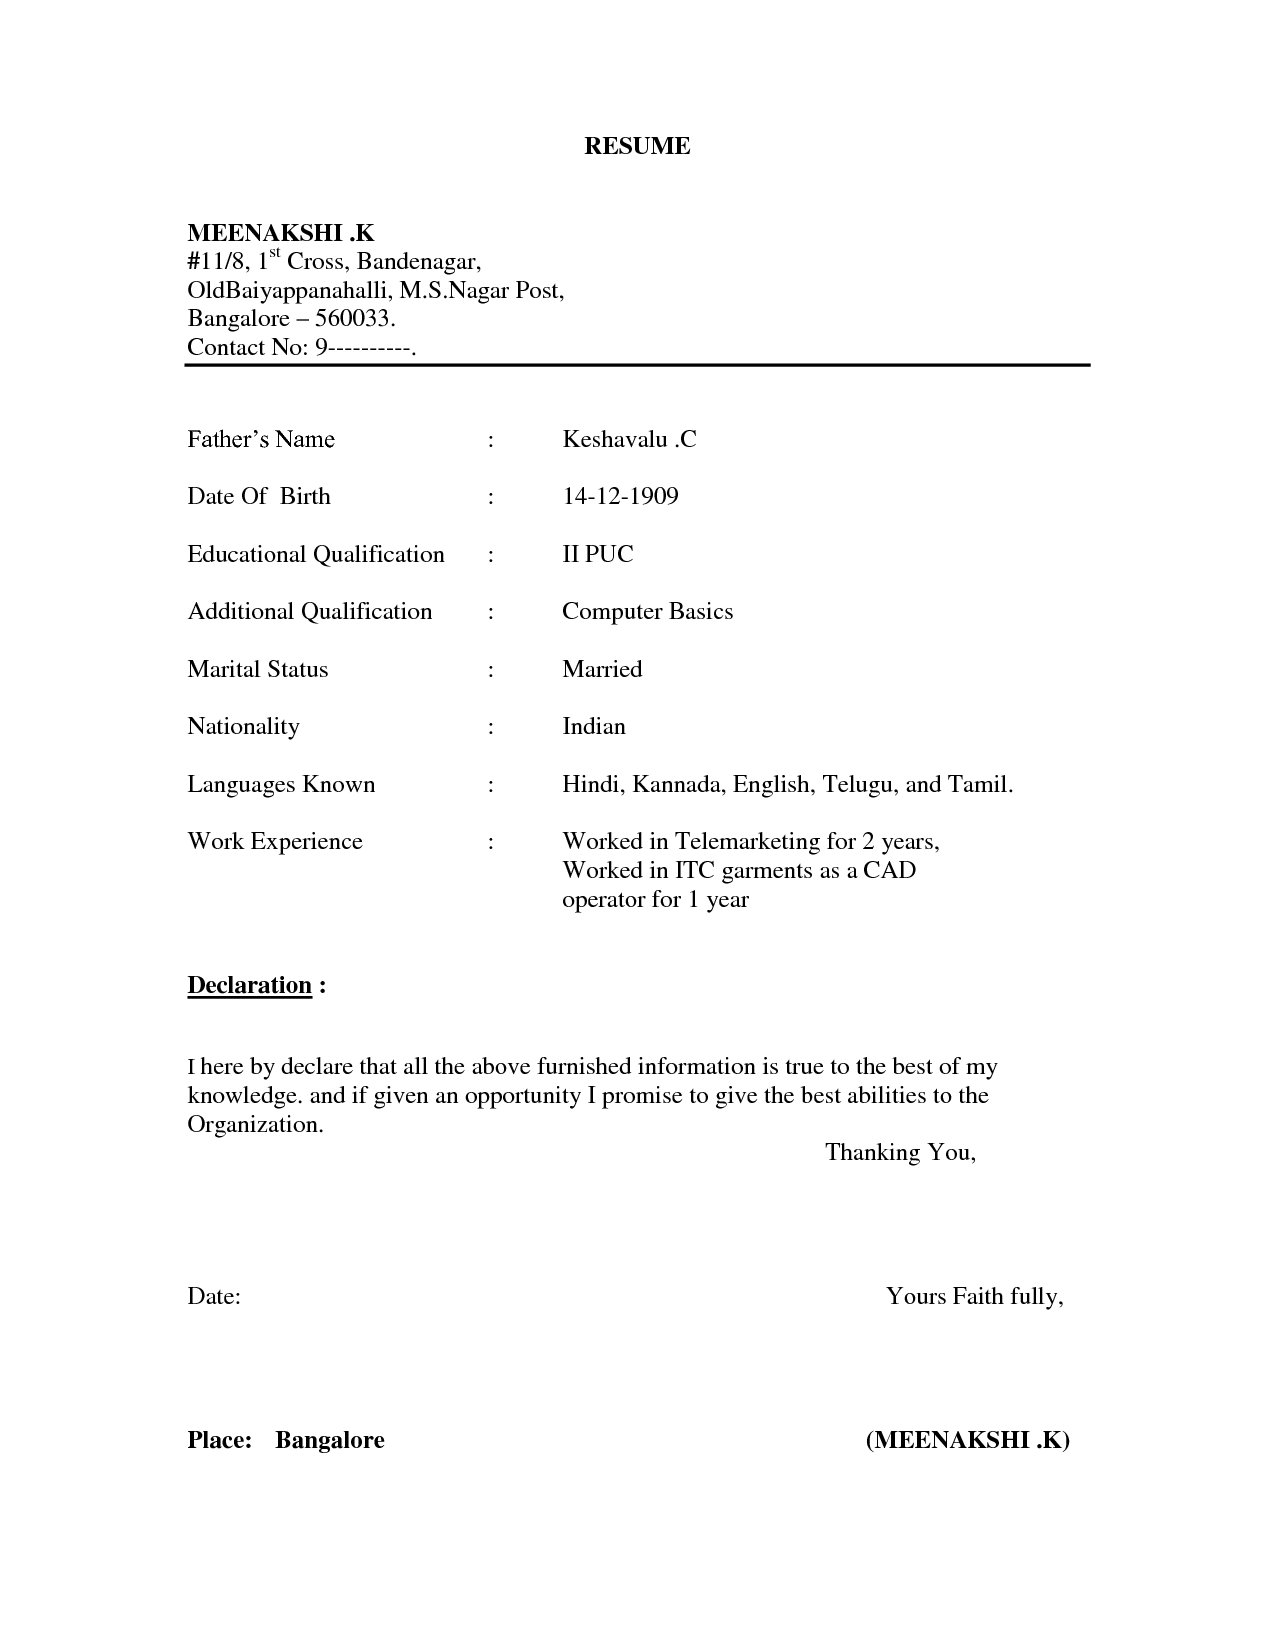 Resume Template Downloads Resume Format Doc File Download Resume Format Doc File Download